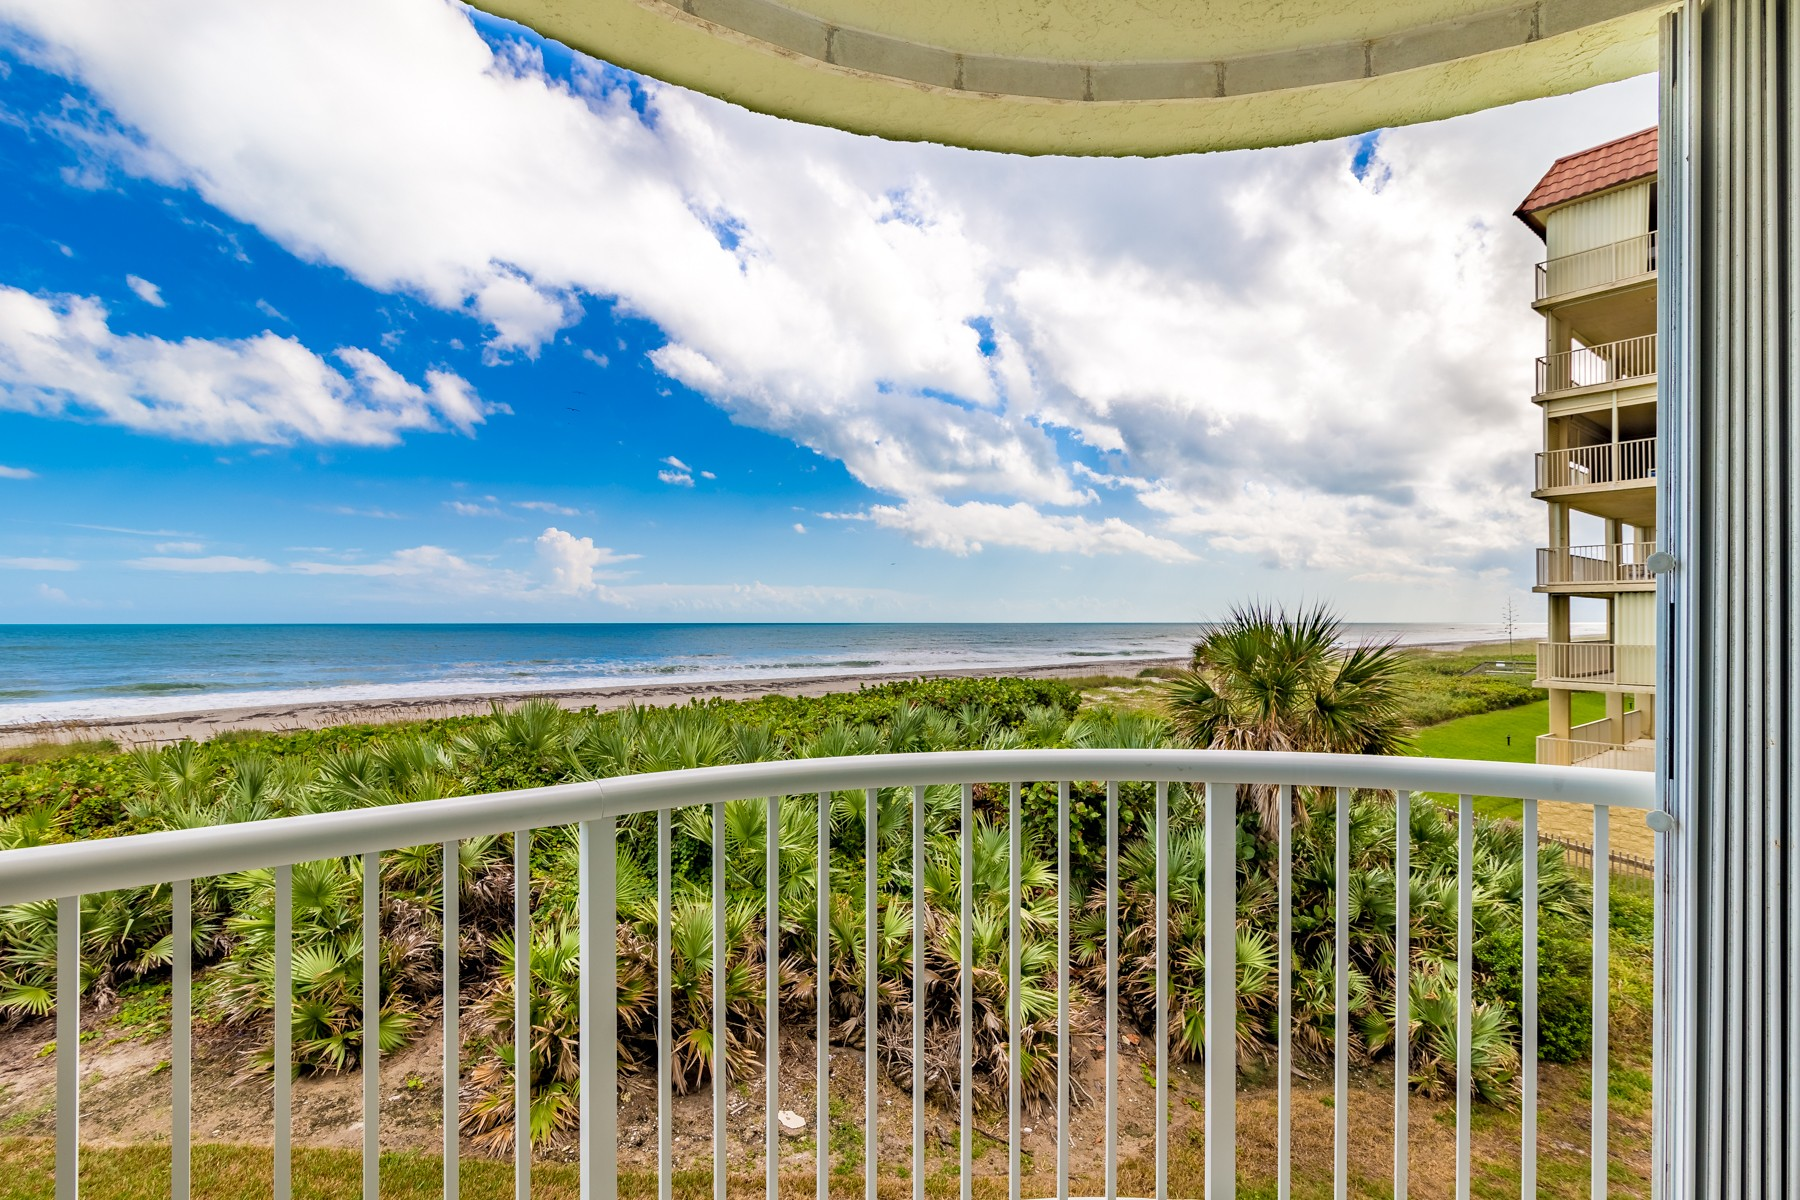 Condominium for Sale at Casa Playa 3031 South Atlantic Avenue #202 Cocoa Beach, Florida 32931 United States